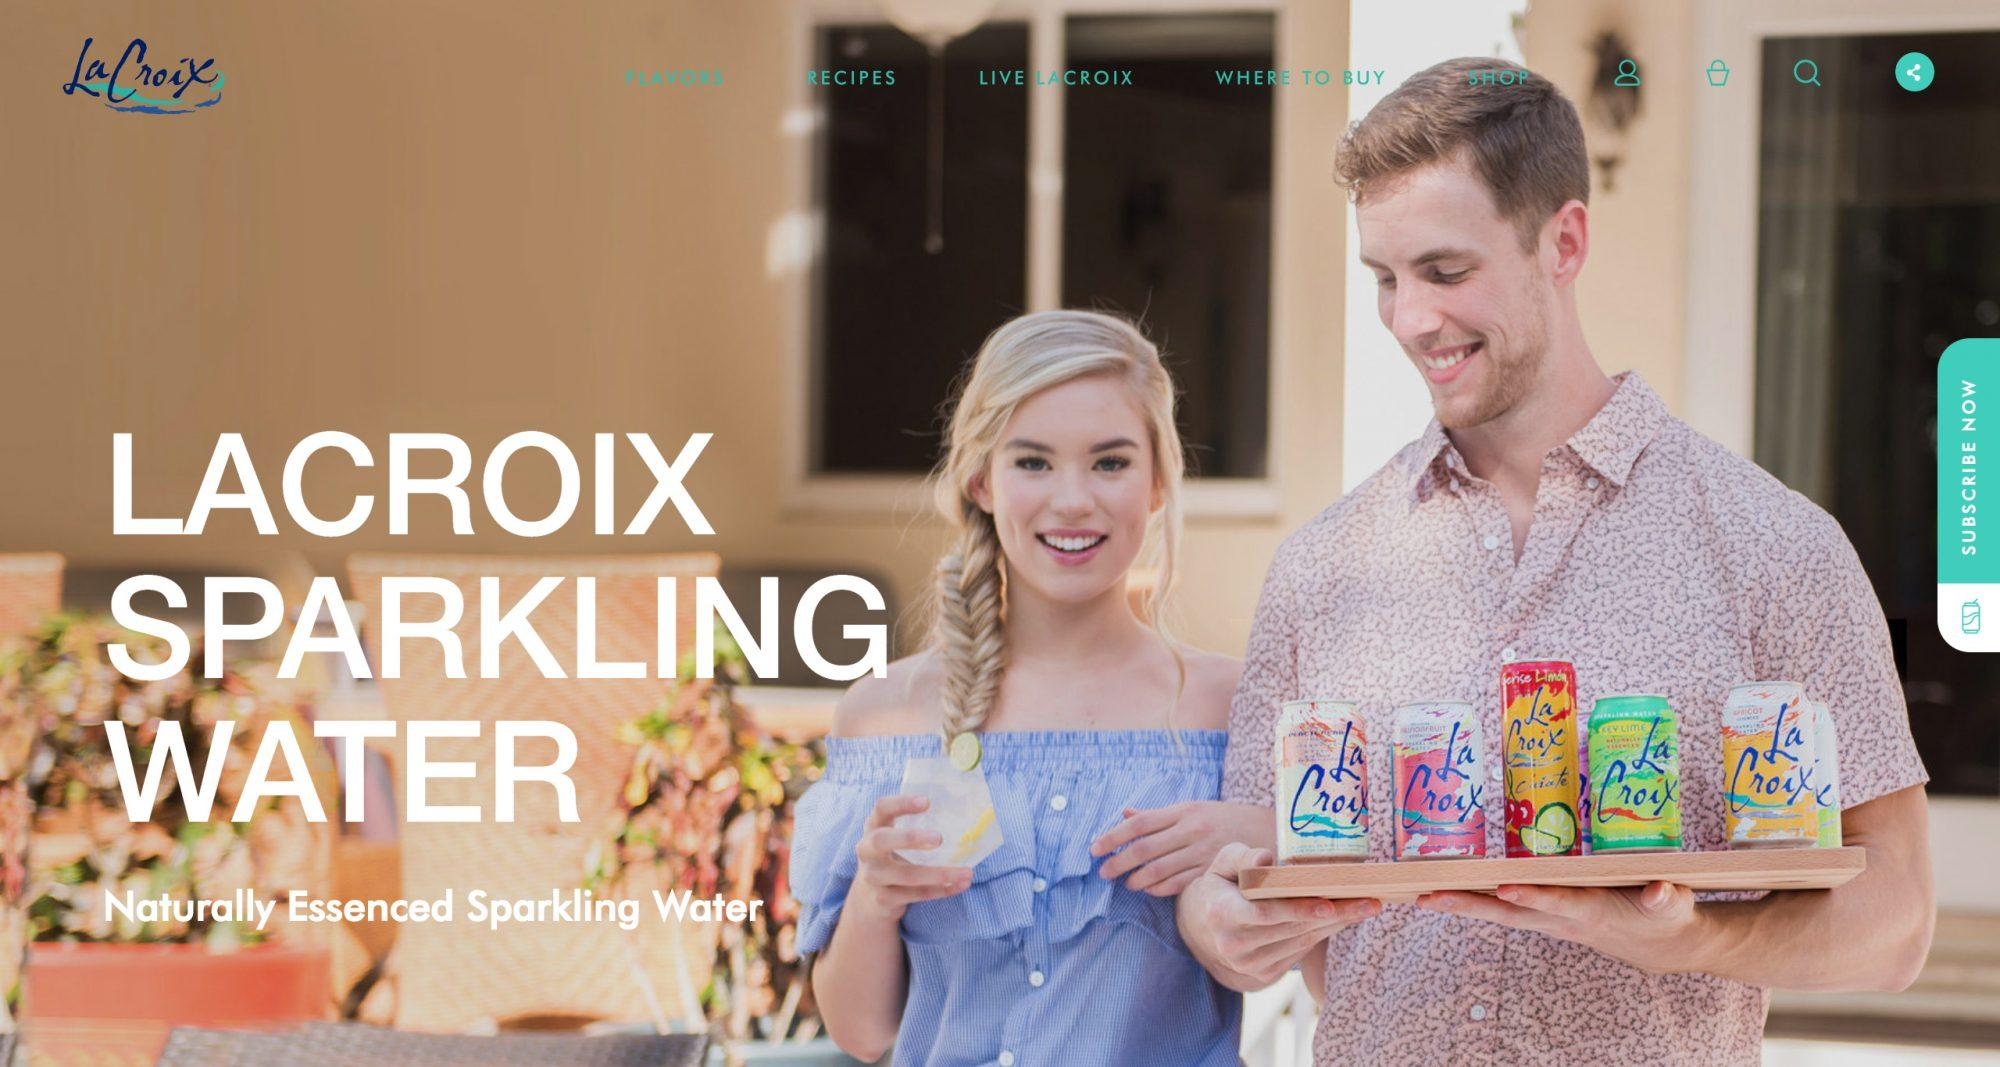 La Croix Sparkling Water Company Website Homepage